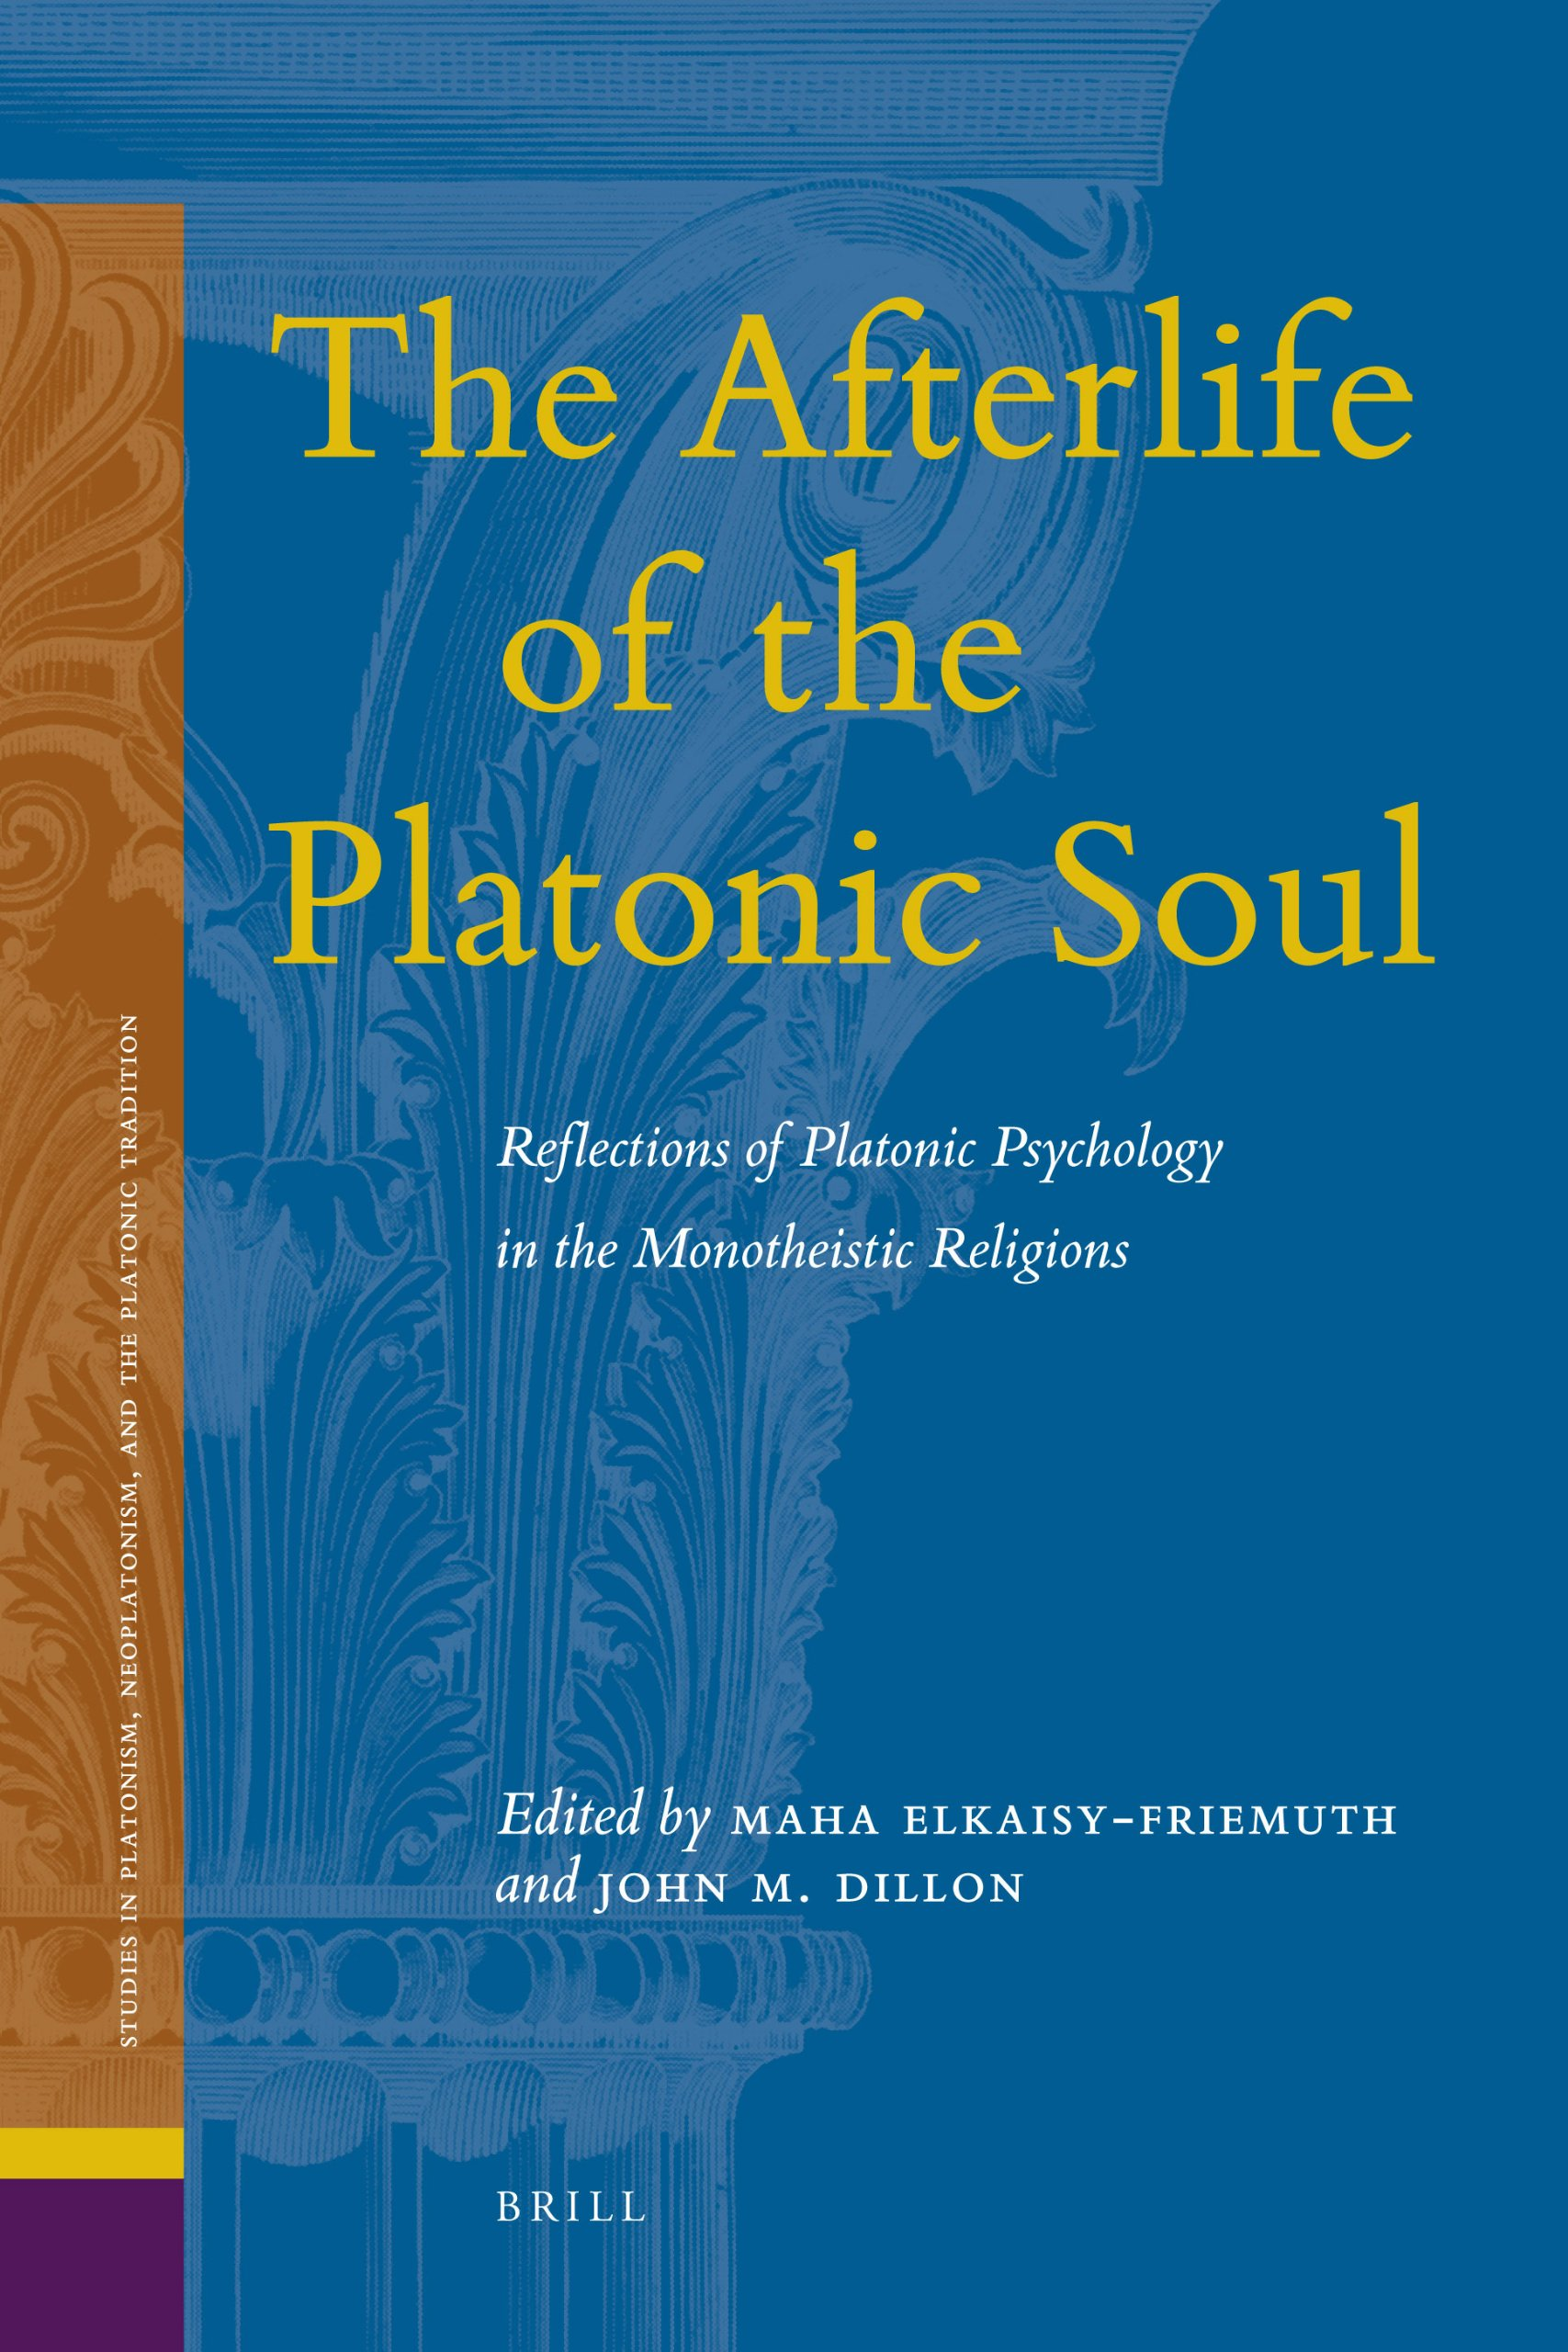 The Afterlife of the Platonic Soul (Studies in Platonism, Neoplatonism, and the Platonic Traditi) by Brill